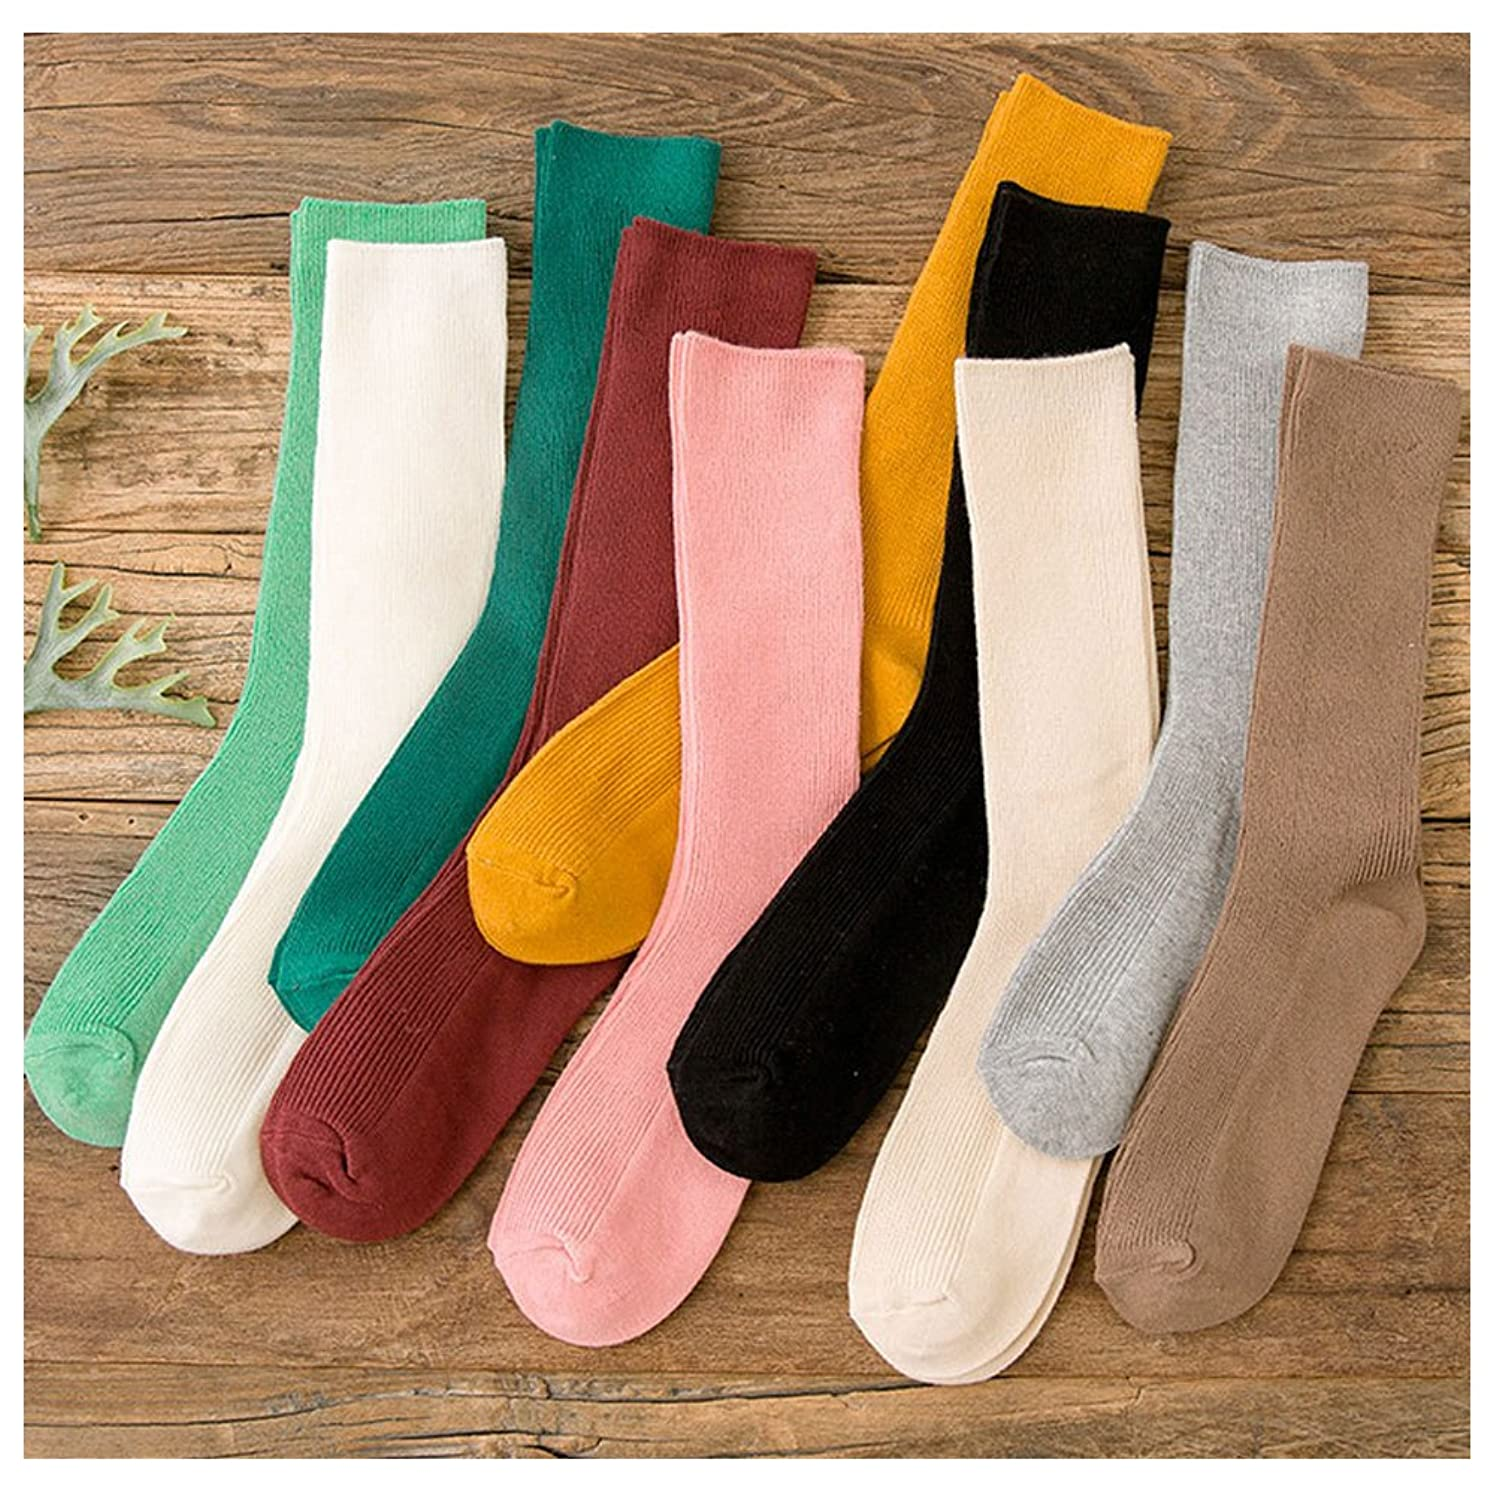 10-Pack Janpanese Style Womens Stretch-Cotton Ribbed Knit Crew Boot Socks,Multicolor